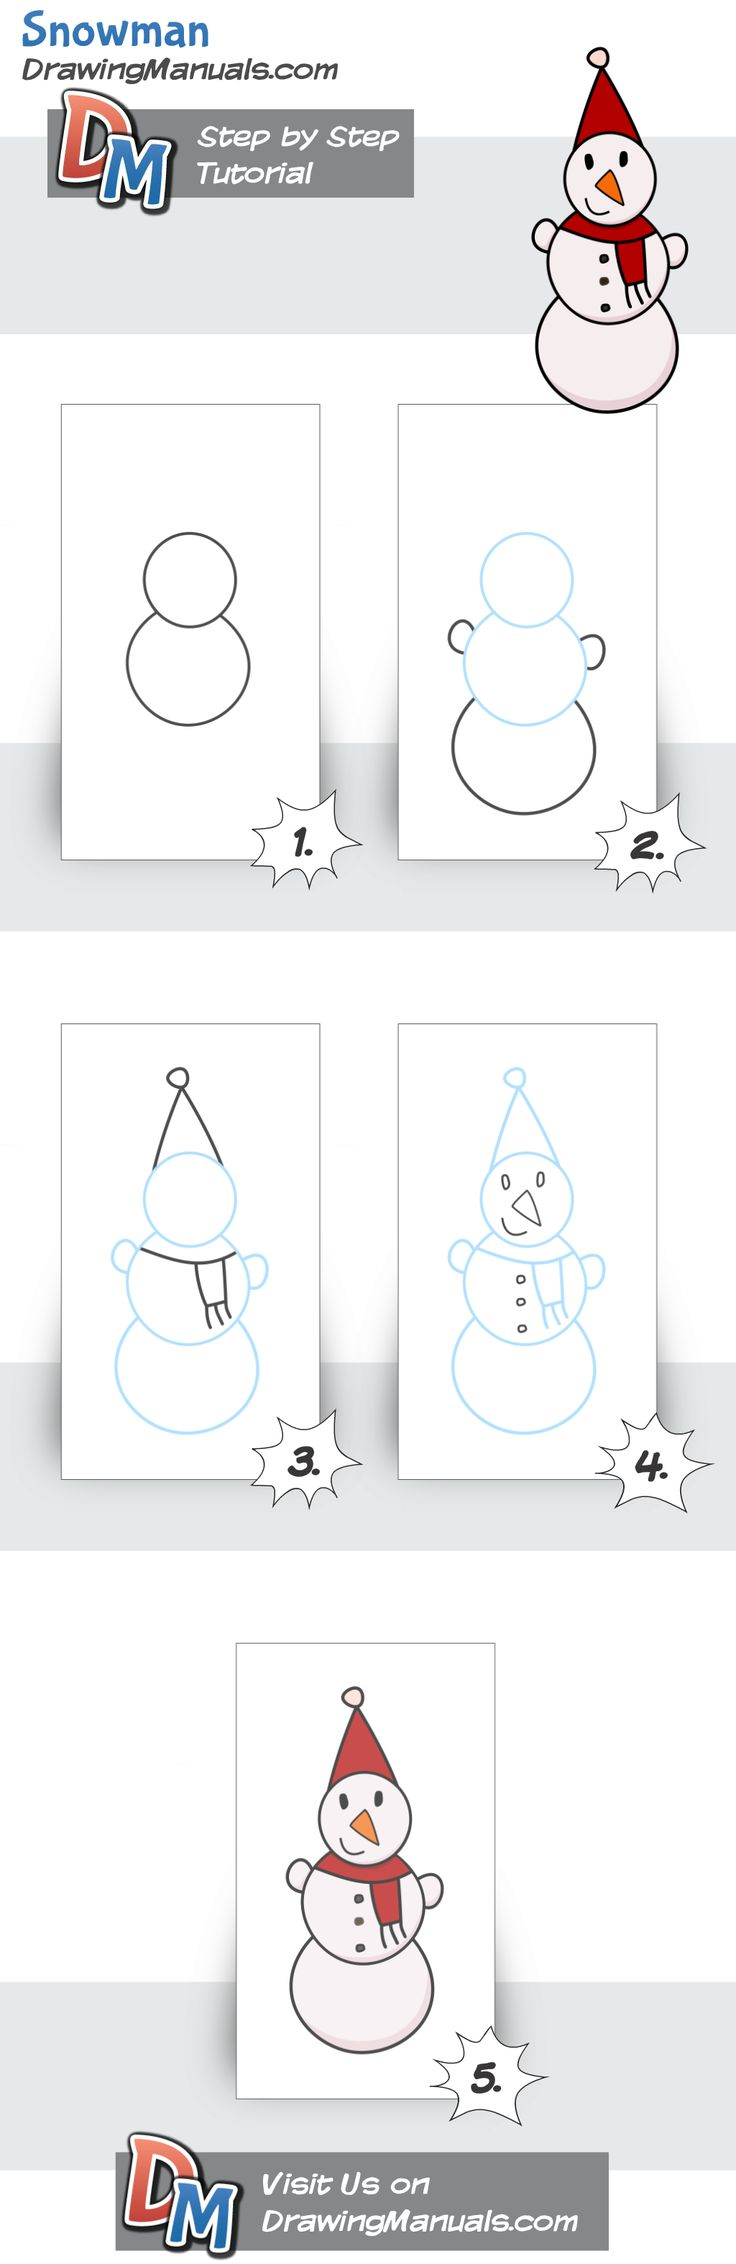 Simple Tutorial for Kids, Snowman http://drawingmanuals.com/manual/simple-tutorial-for-kids-snowman/